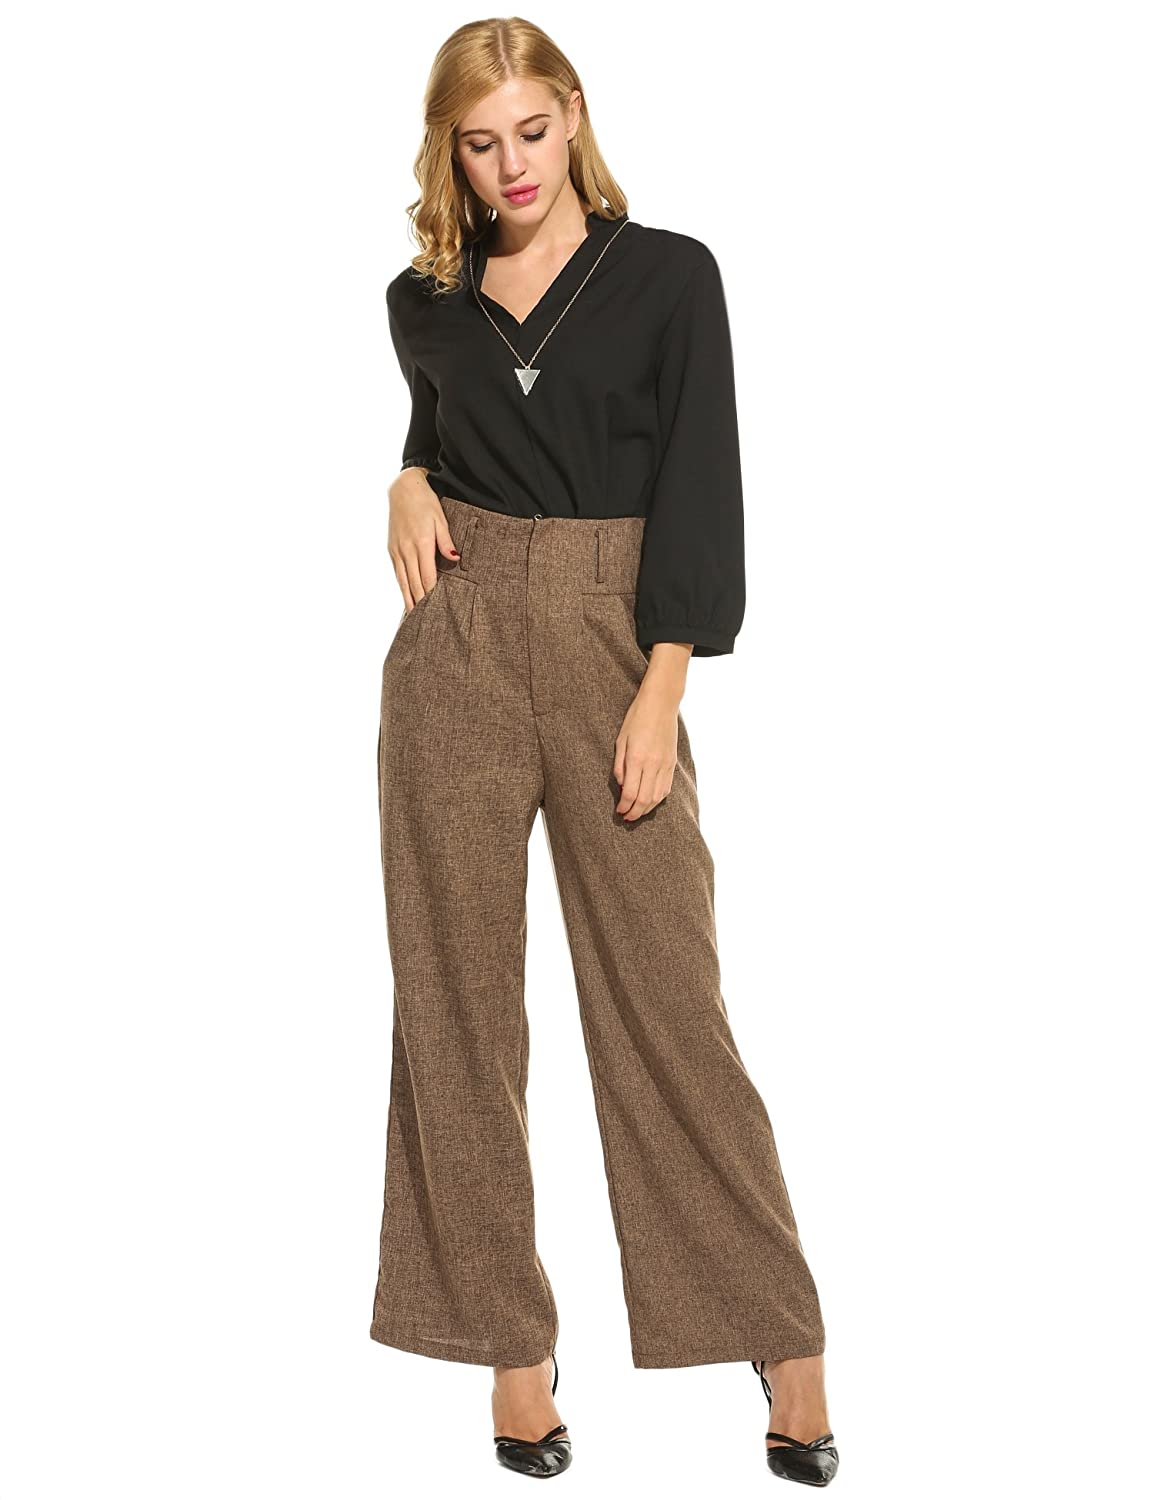 1920s Skirts, Gatsby Skirts, Vintage Pleated Skirts Zeagoo Women Casual Superline Wide Flare Leg High Waist Zipper Solid Long Pants $25.99 AT vintagedancer.com